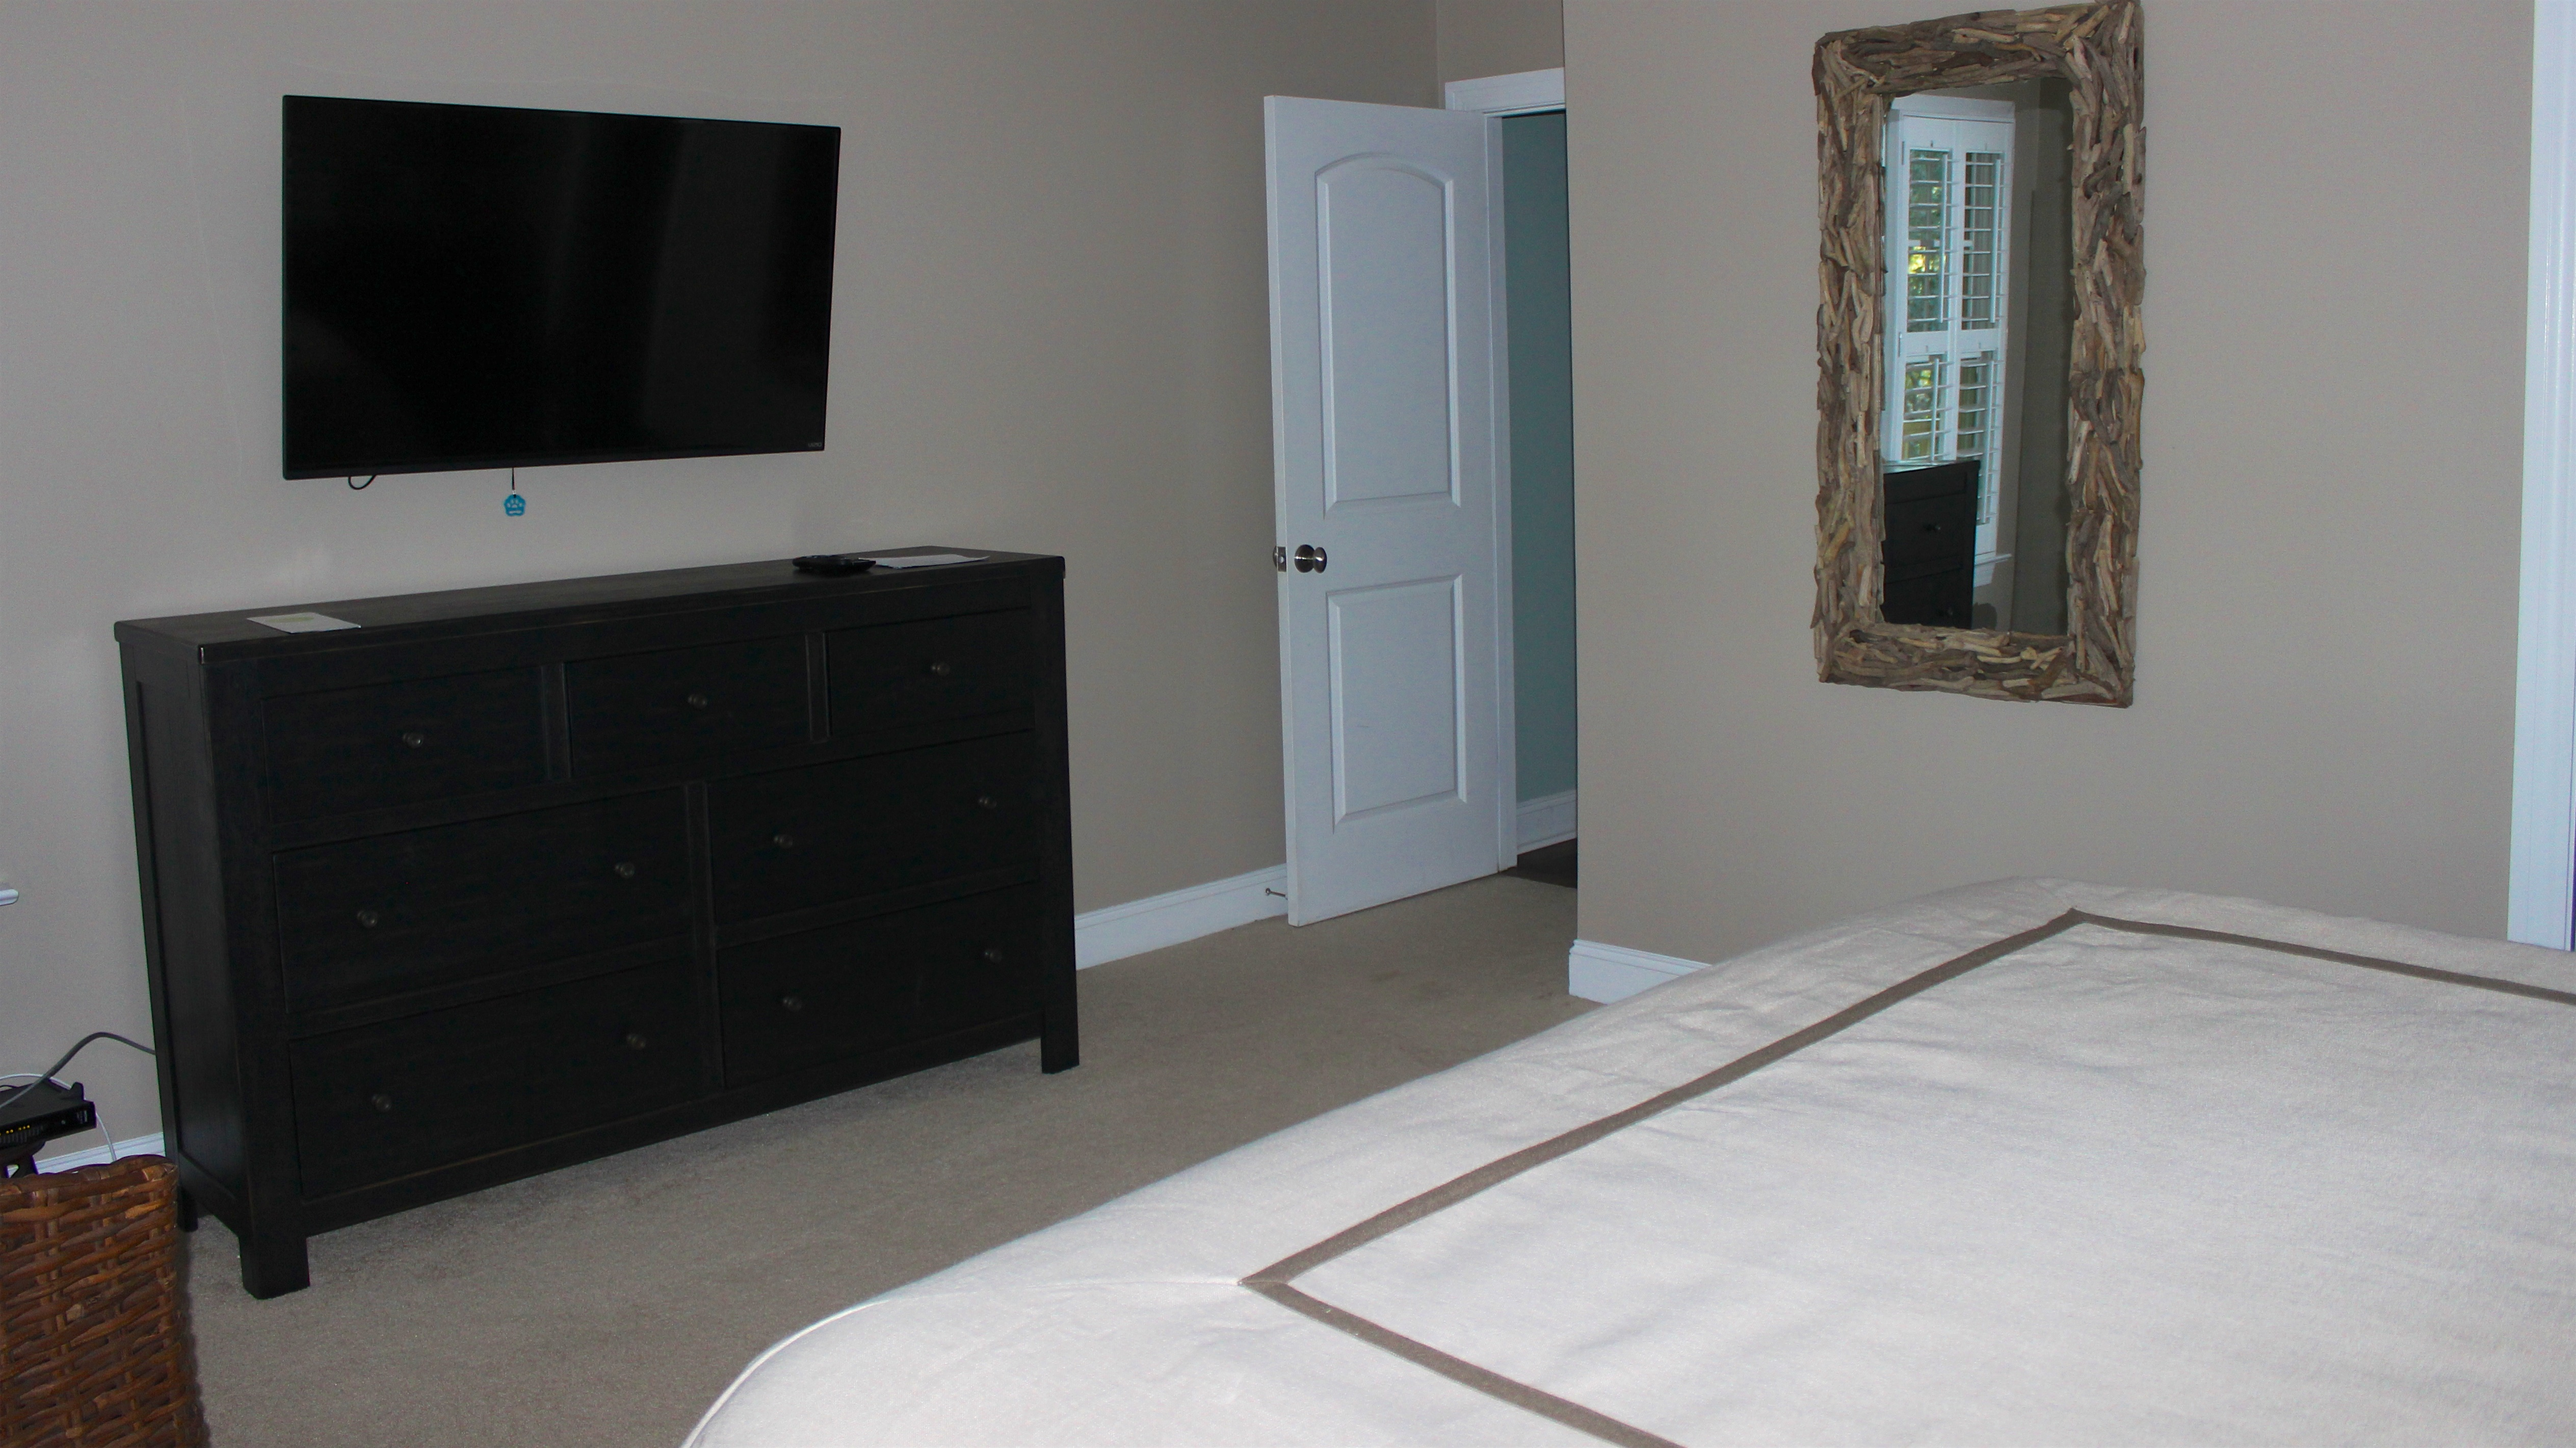 The large wall mounted HDTV is great for viewing shows.